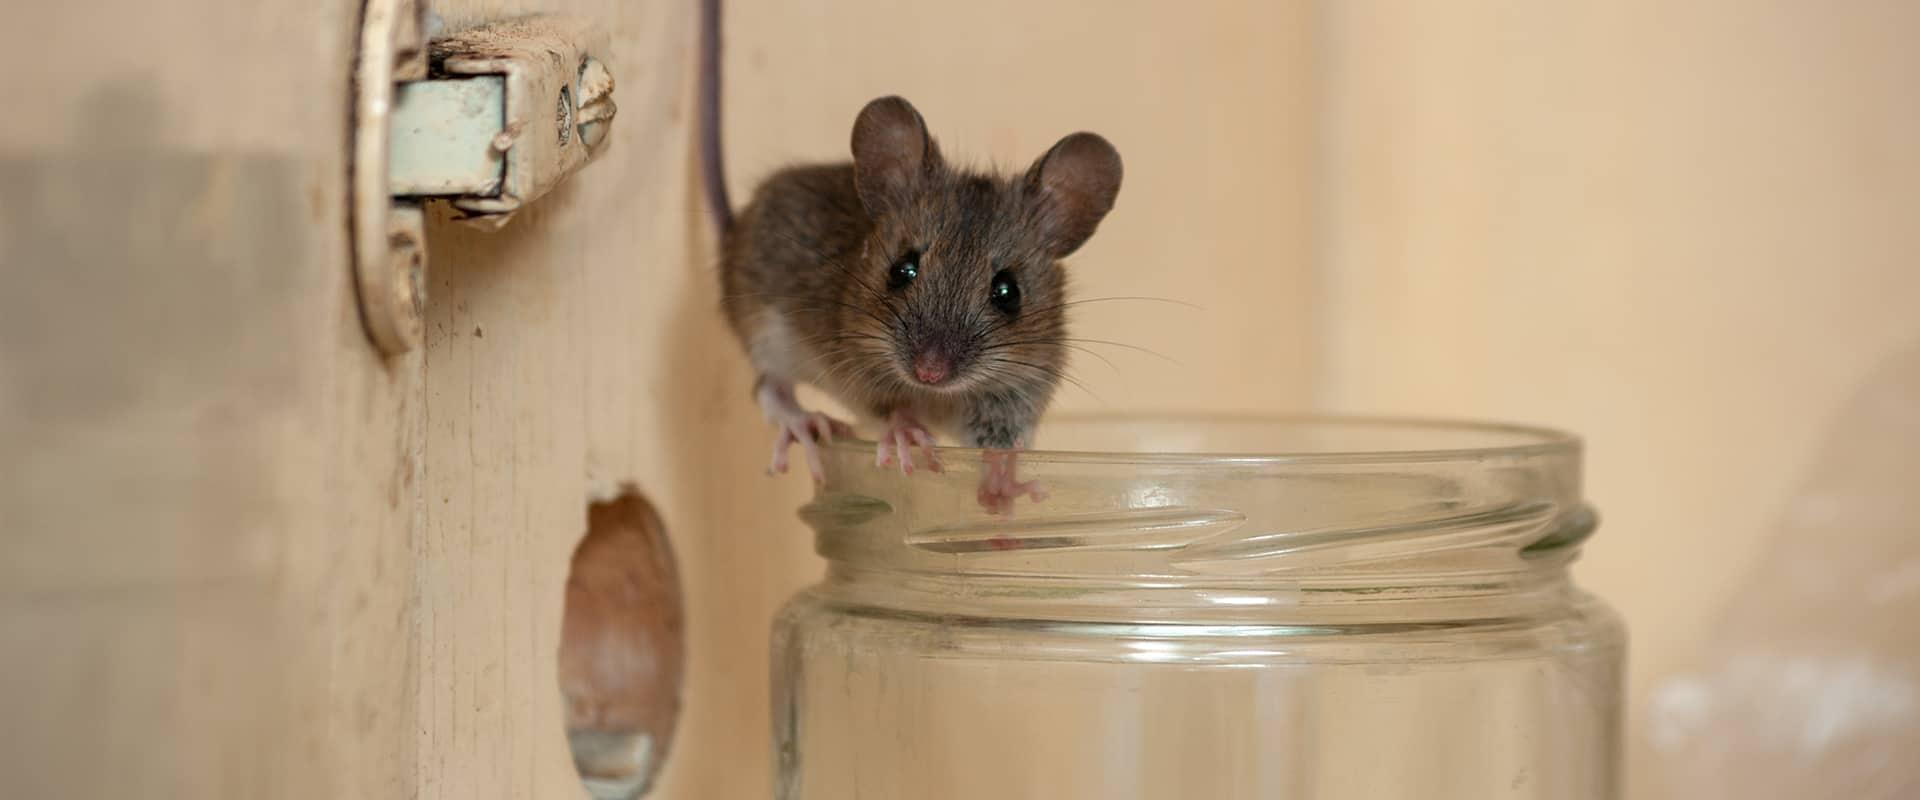 a mouse climbing on the rim of a glass in a home in bethesda maryland